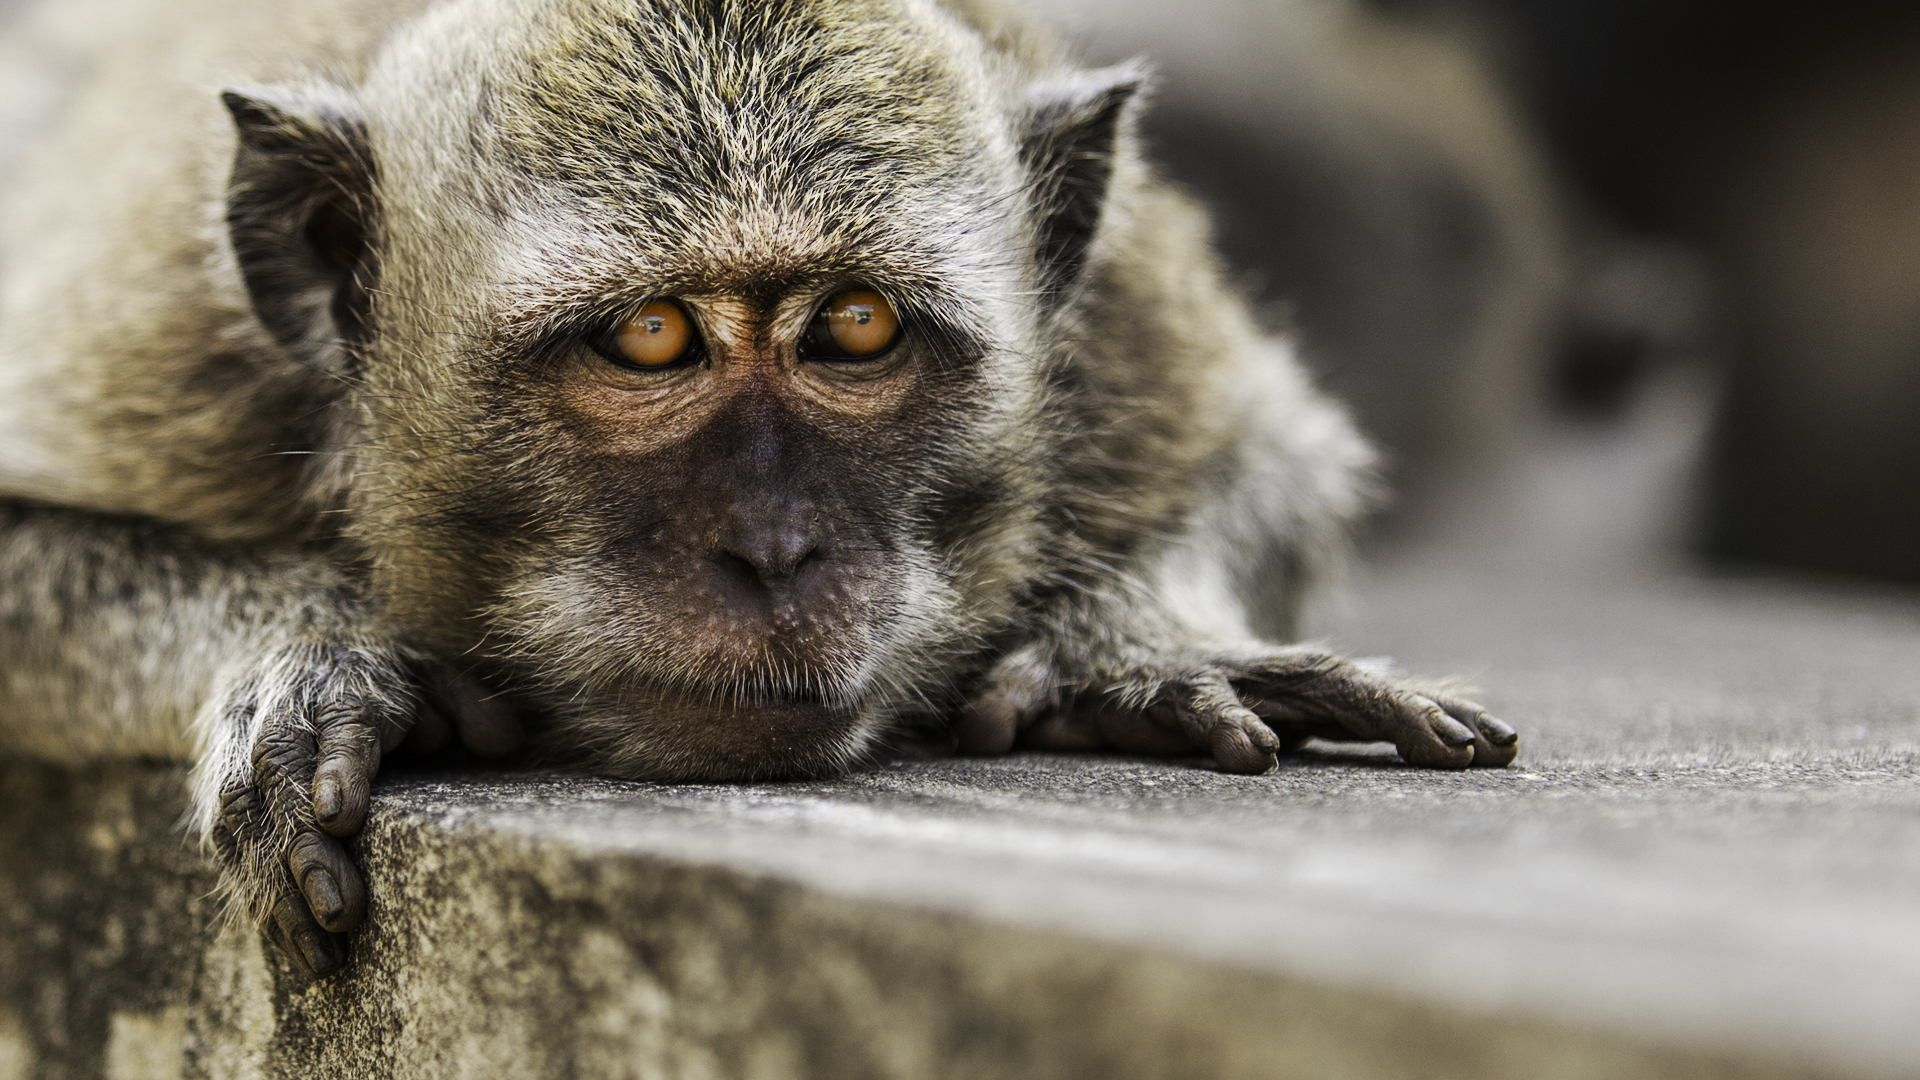 A Cheeky Monkey by Duane Moore on 500px